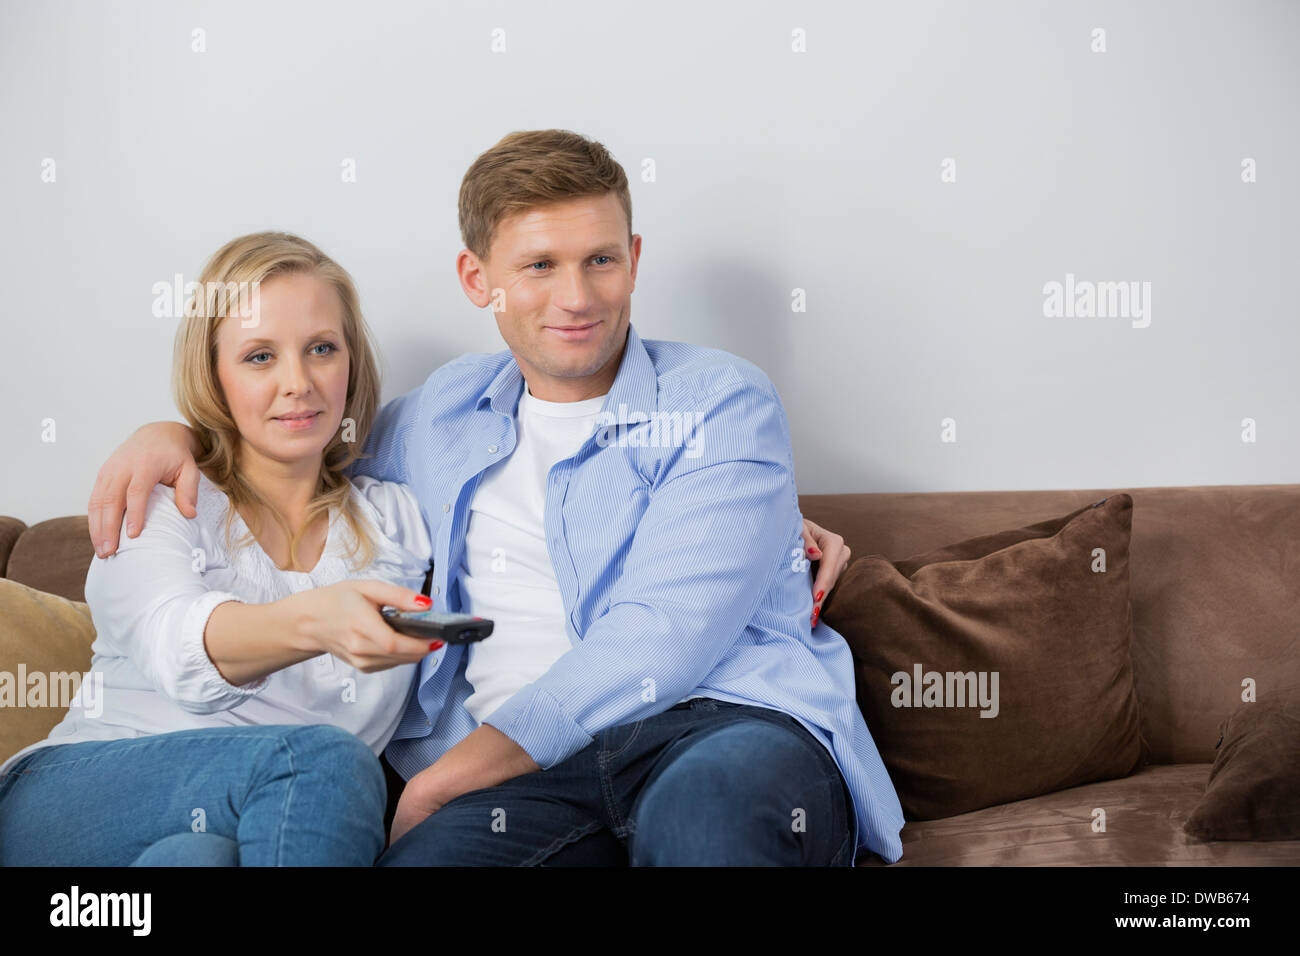 Mid adult couple watching television on sofa - Stock Image